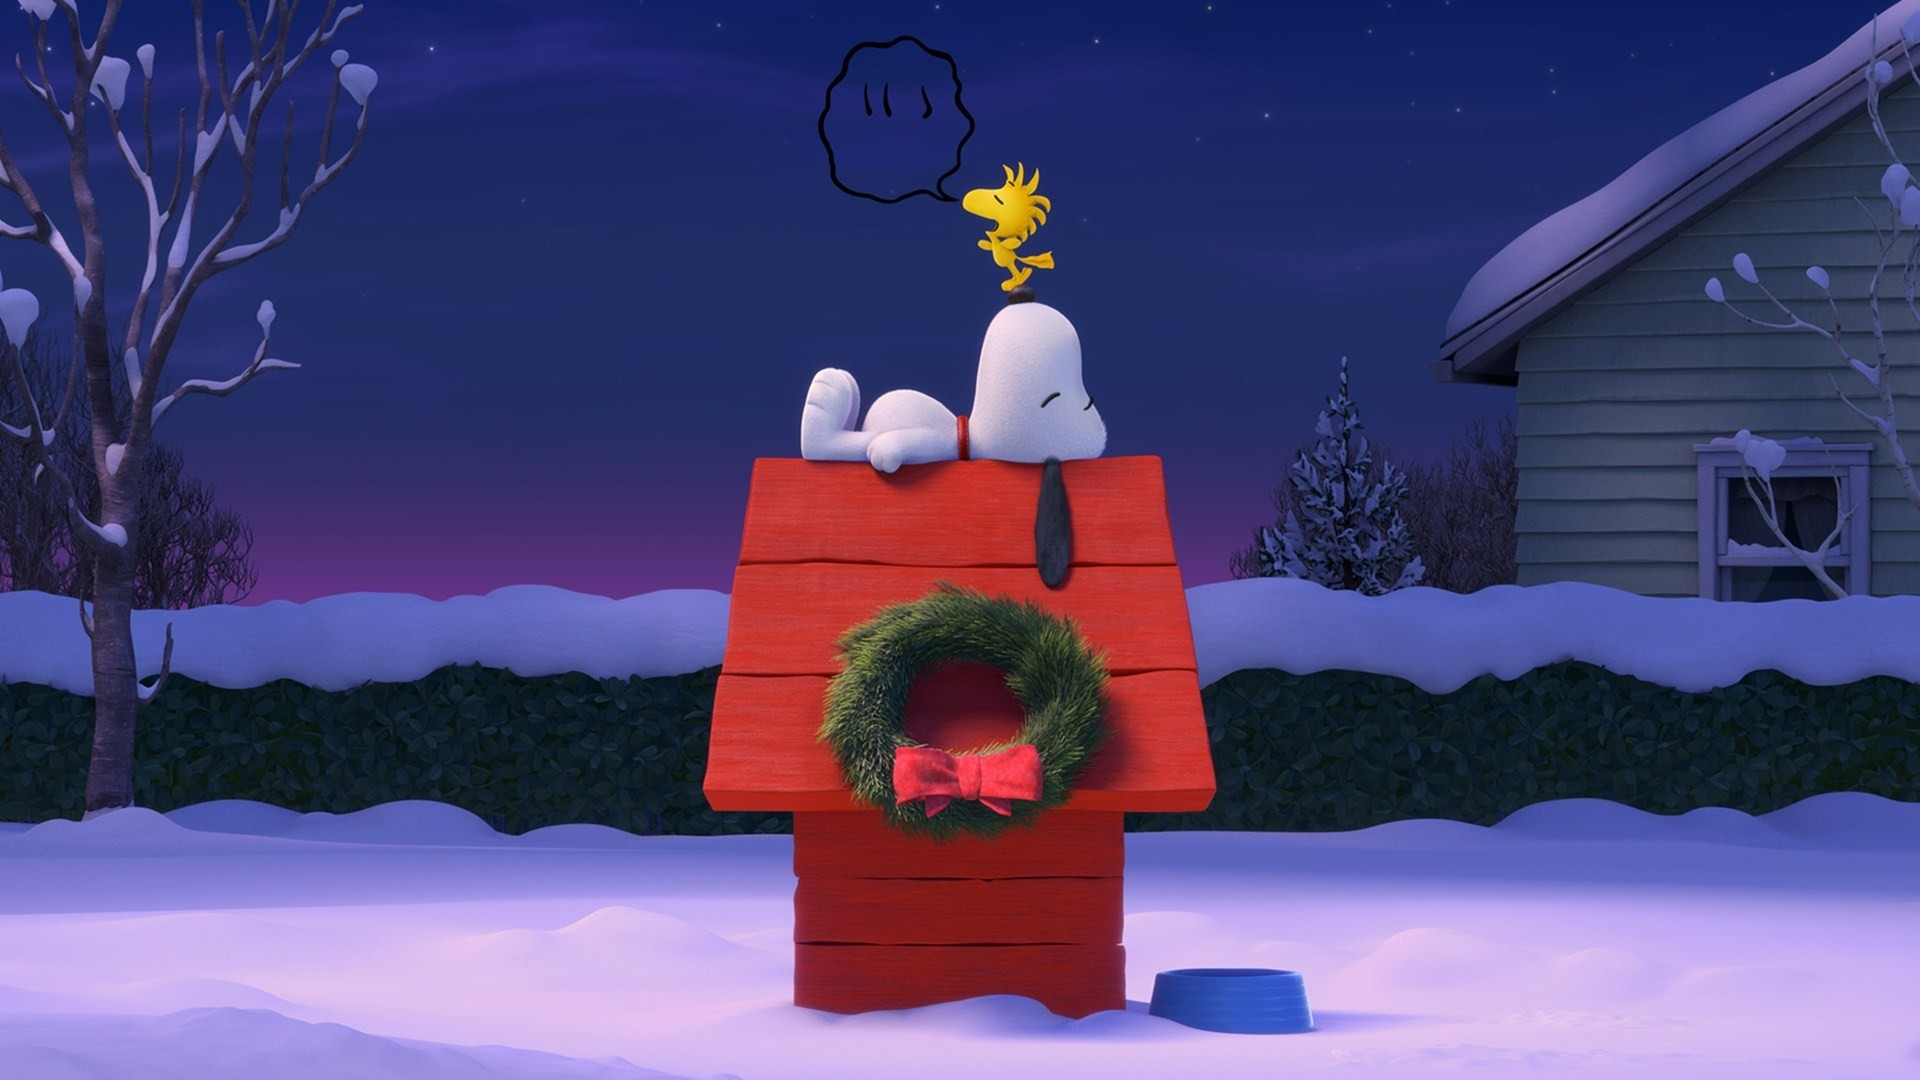 snoopy - Snoopy Christmas Pictures